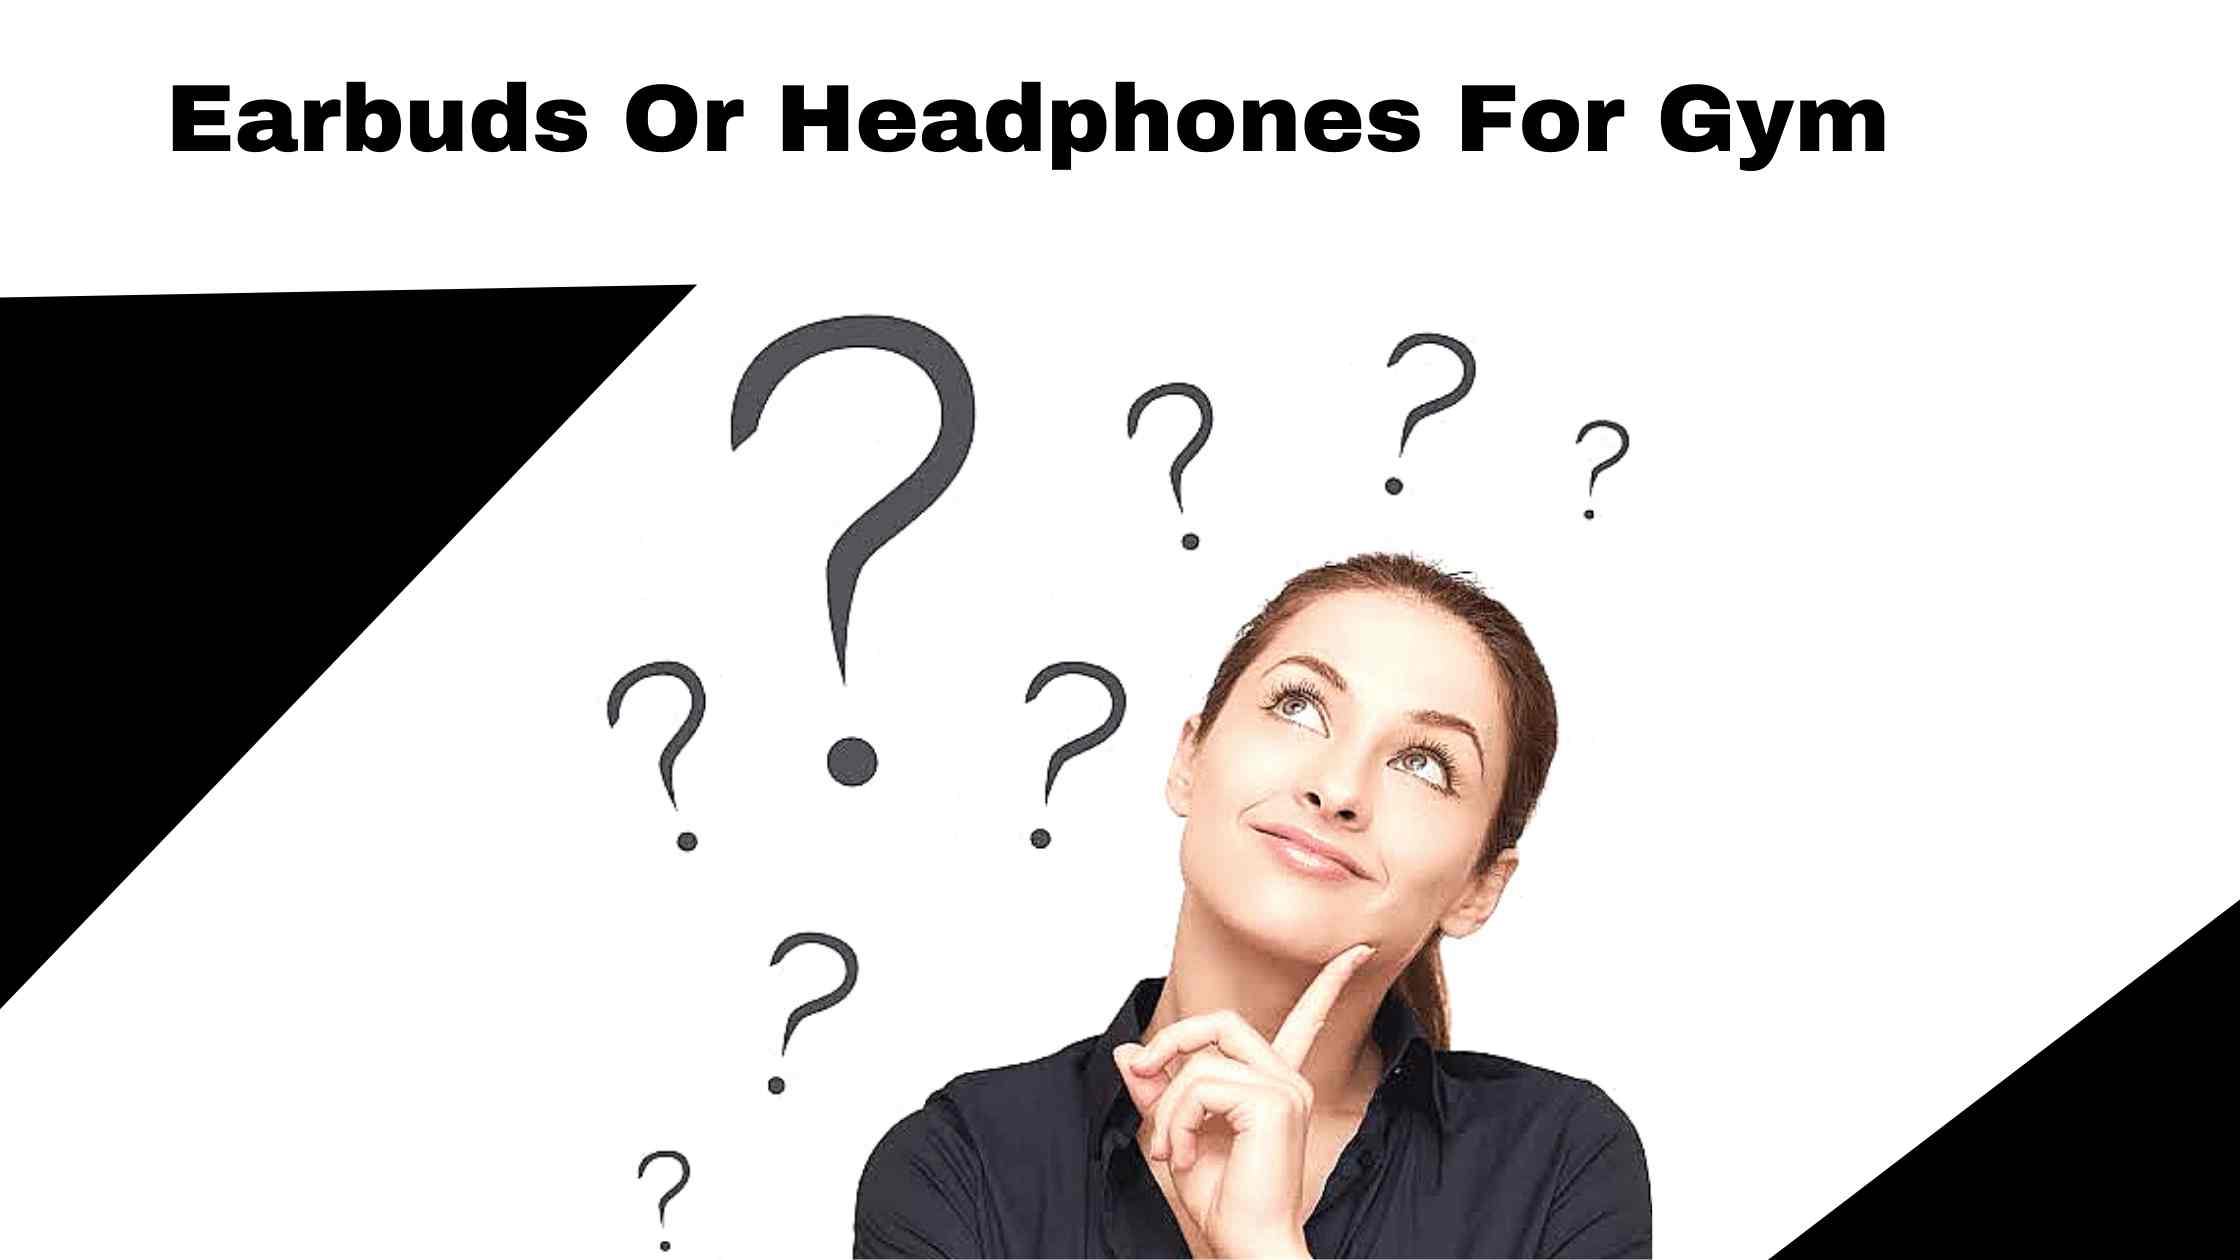 earbuds-and-headphones-for-gym